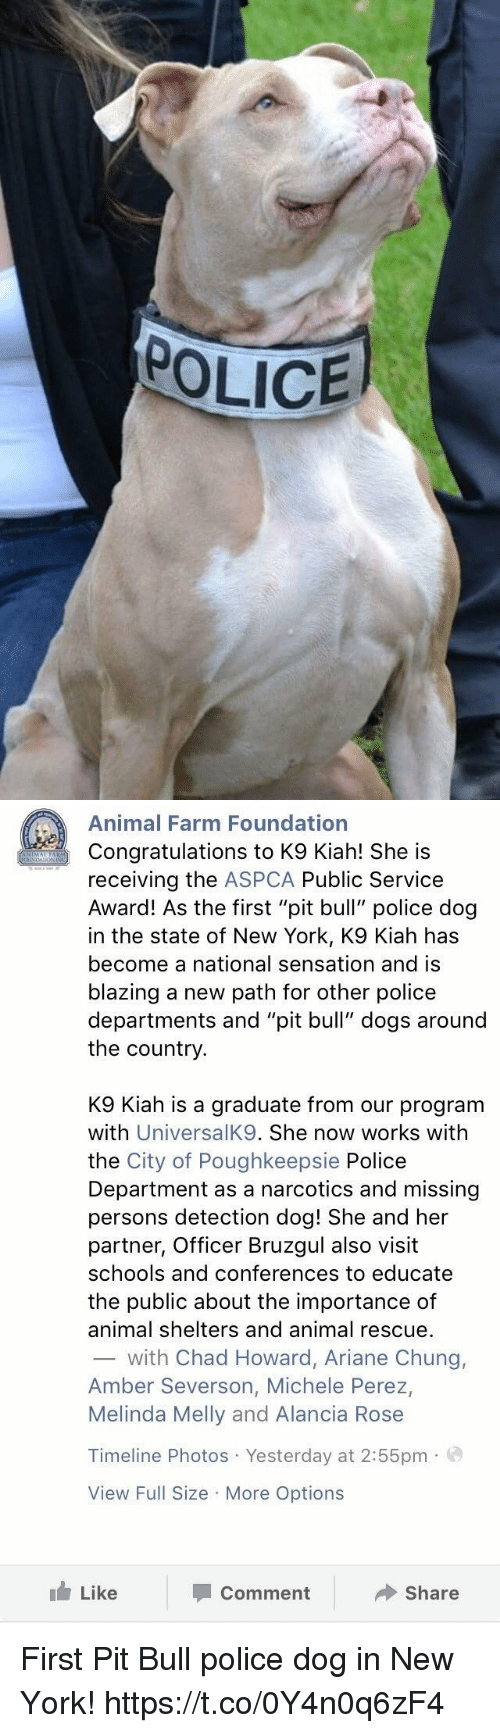 """Aspca: POLICE   Animal Farm Foundation  Congratulations to K9 Kiah! She is  receiving the  ASPCA Public Service  Award! As the first """"pit bull"""" police dog  in the state of New York, K9 Kiah has  become a national sensation and is  blazing a new path for other police  departments and """"pit bull"""" dogs around  the country  K9 Kiah is a graduate from our program  with  UniversalK9. She now works with  the City of Poughkeepsie Police  Department as a narcotics and missing  persons detection dog! She and her  partner, Officer Bruzgul also visit  schools and conferences to educate  the public about the importance of  animal shelters and animal rescue.  with Chad Howard, Ariane Chung,  Amber Severson, Michele Perez,  Melinda Melly and Alancia Rose  Timeline Photos Yesterday at 2:55pm  a  View Full Size More Options  Like  Share  Comment First Pit Bull police dog in New York! https://t.co/0Y4n0q6zF4"""